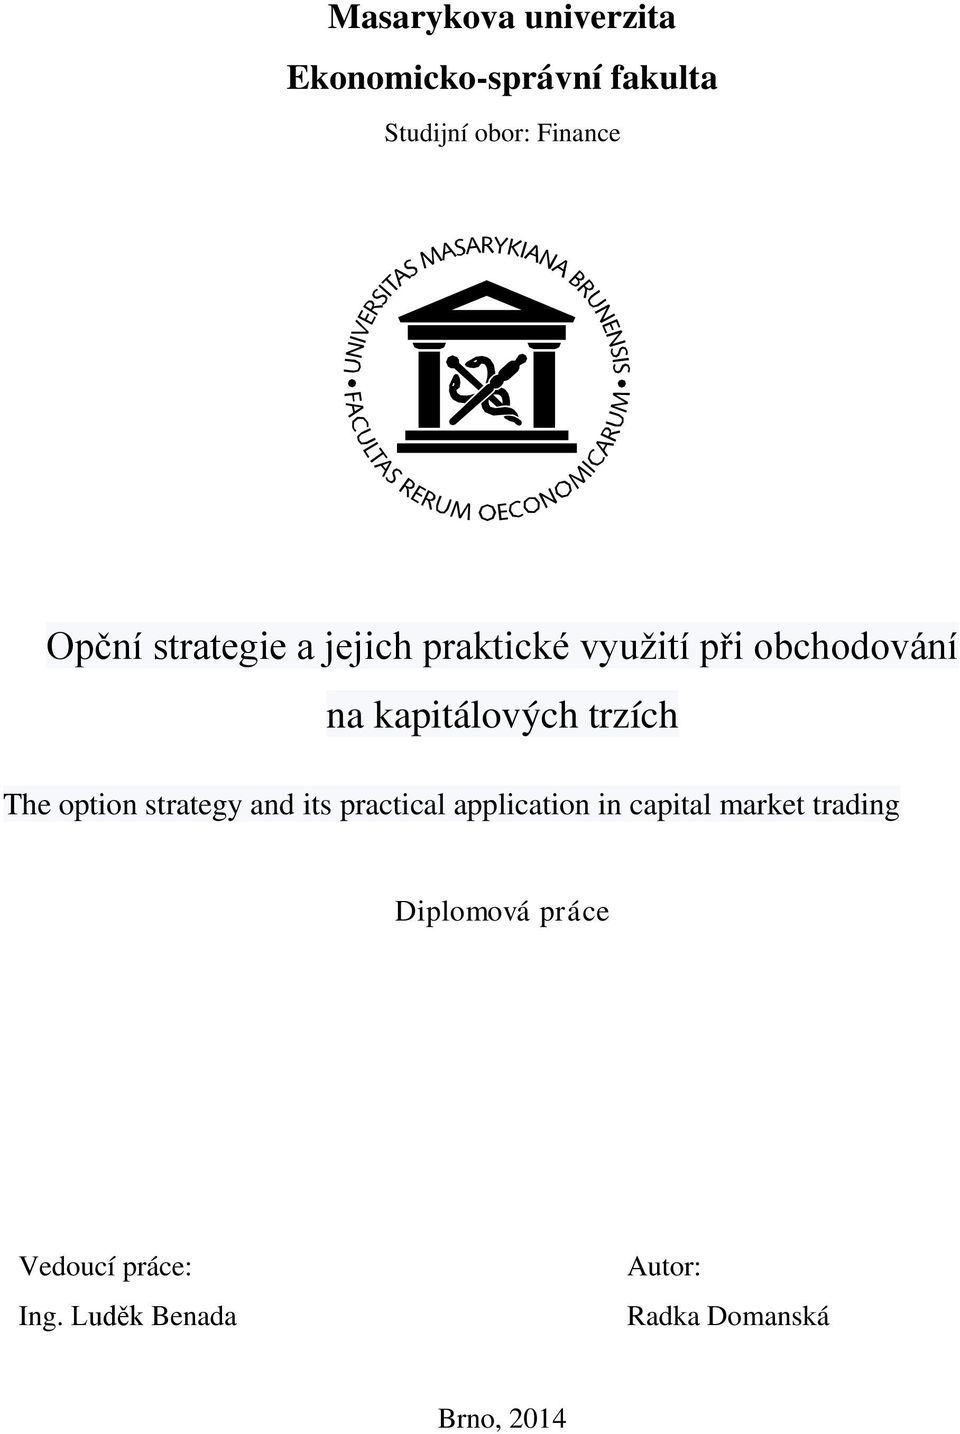 The option strategy and its practical application in capital market trading